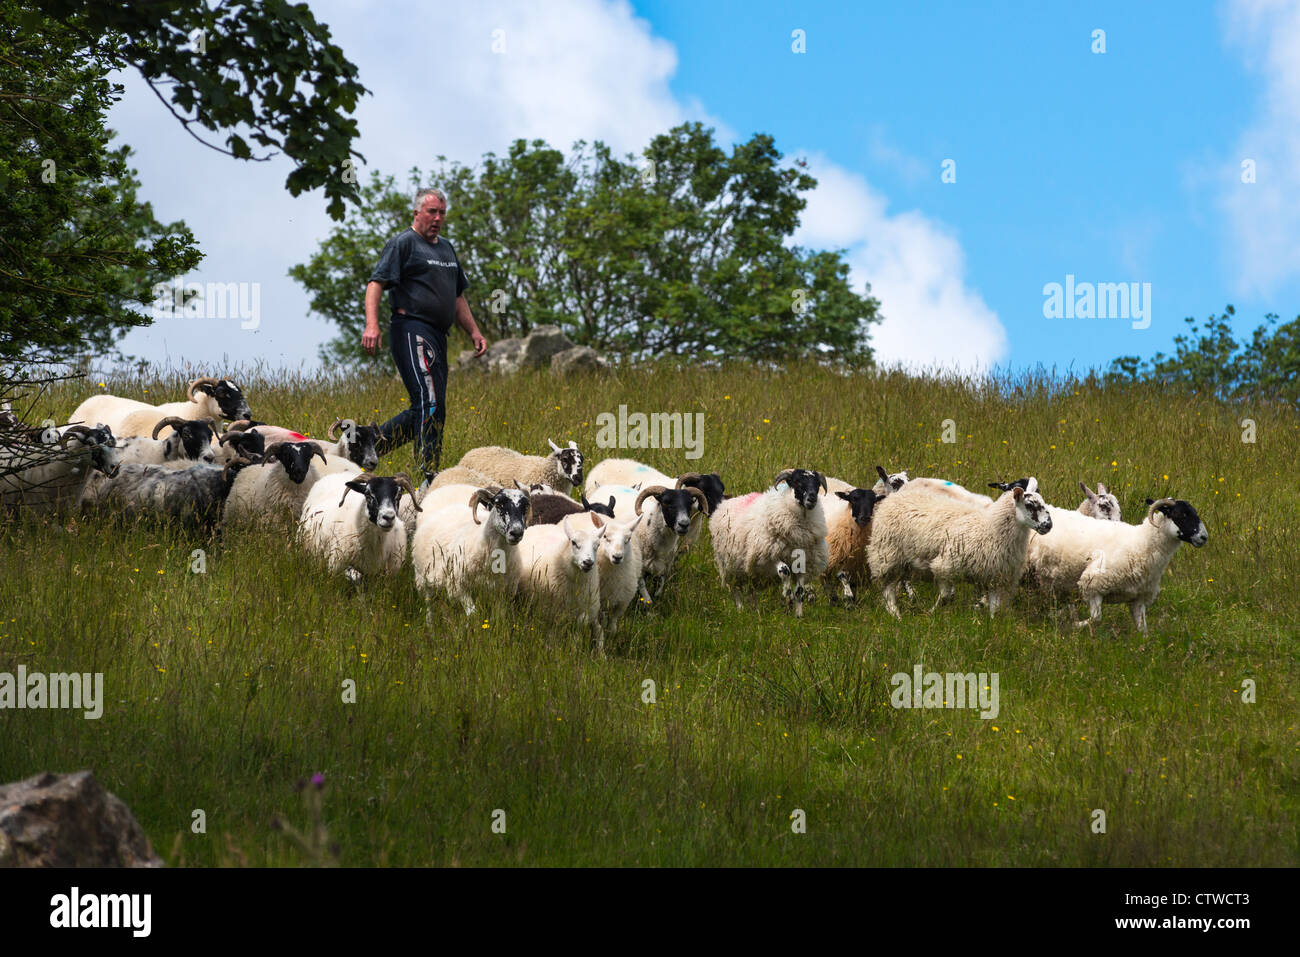 Sheep herding on the edge of the village of Carrick in south Donegal, Republic of Ireland. - Stock Image